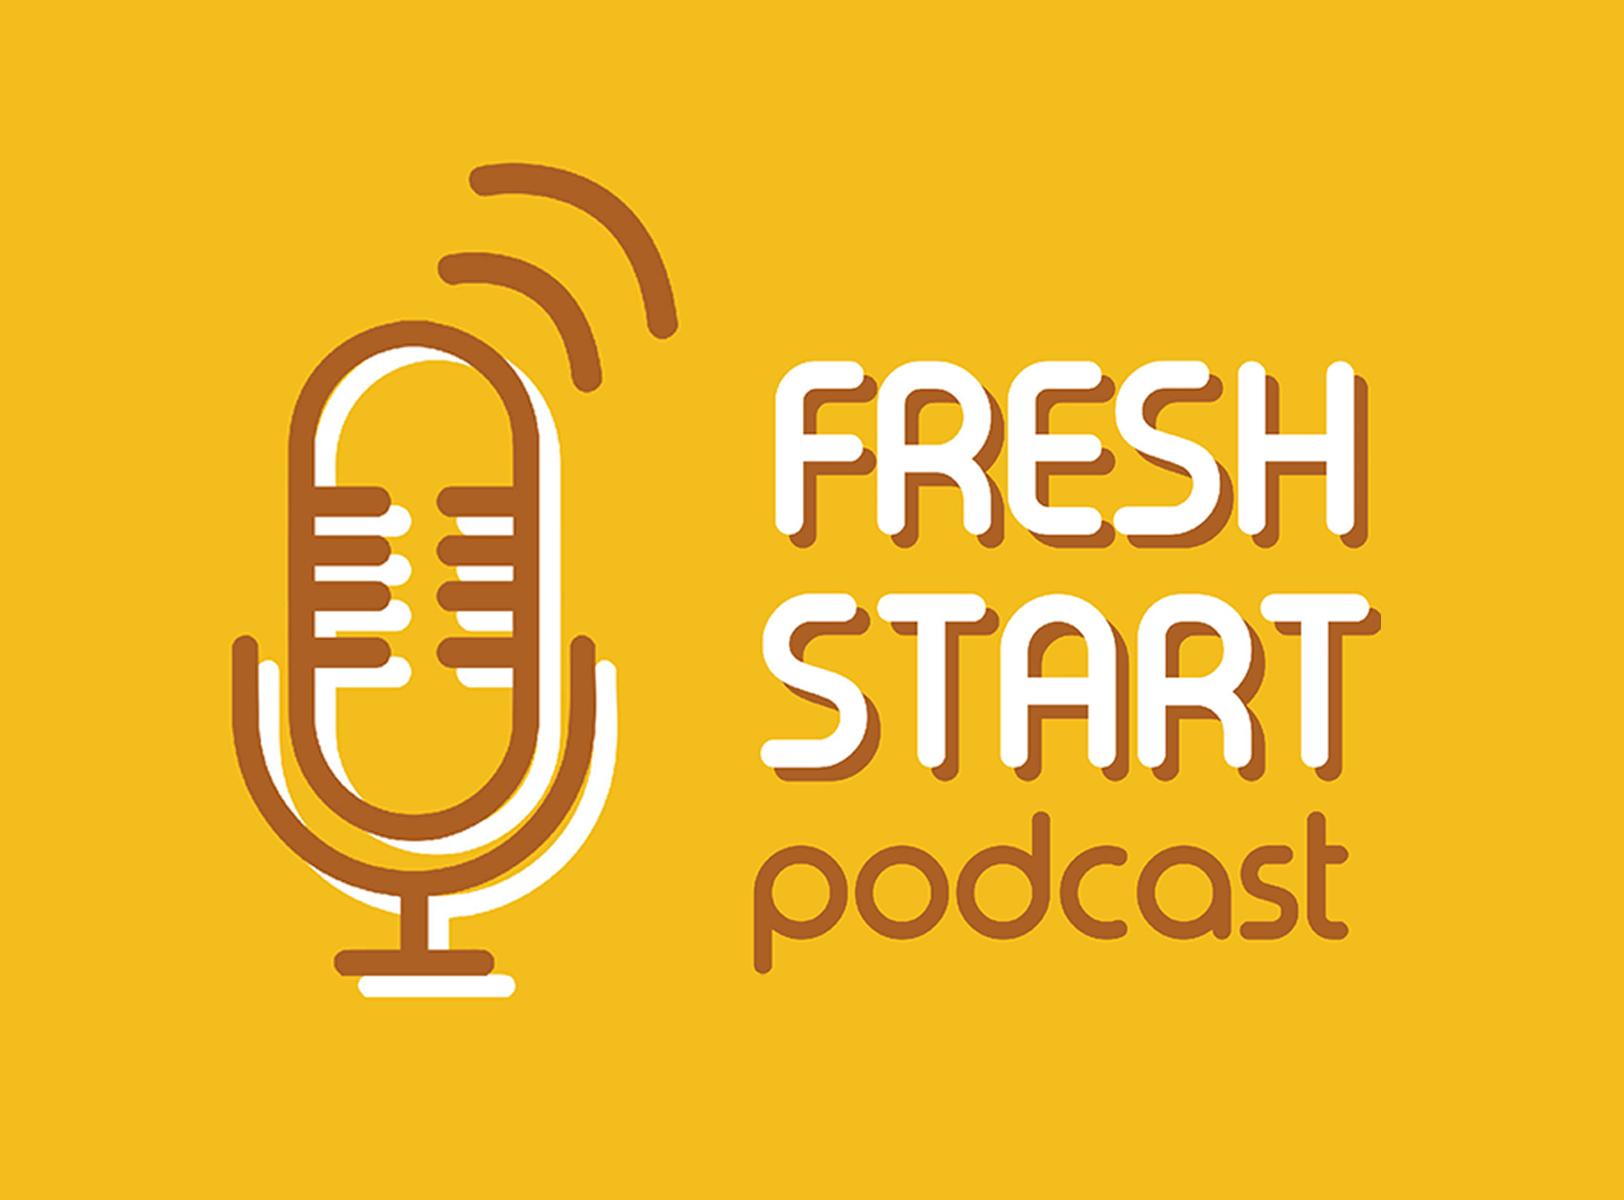 Fresh Start: Podcast News (2/14/2019 Thu.)